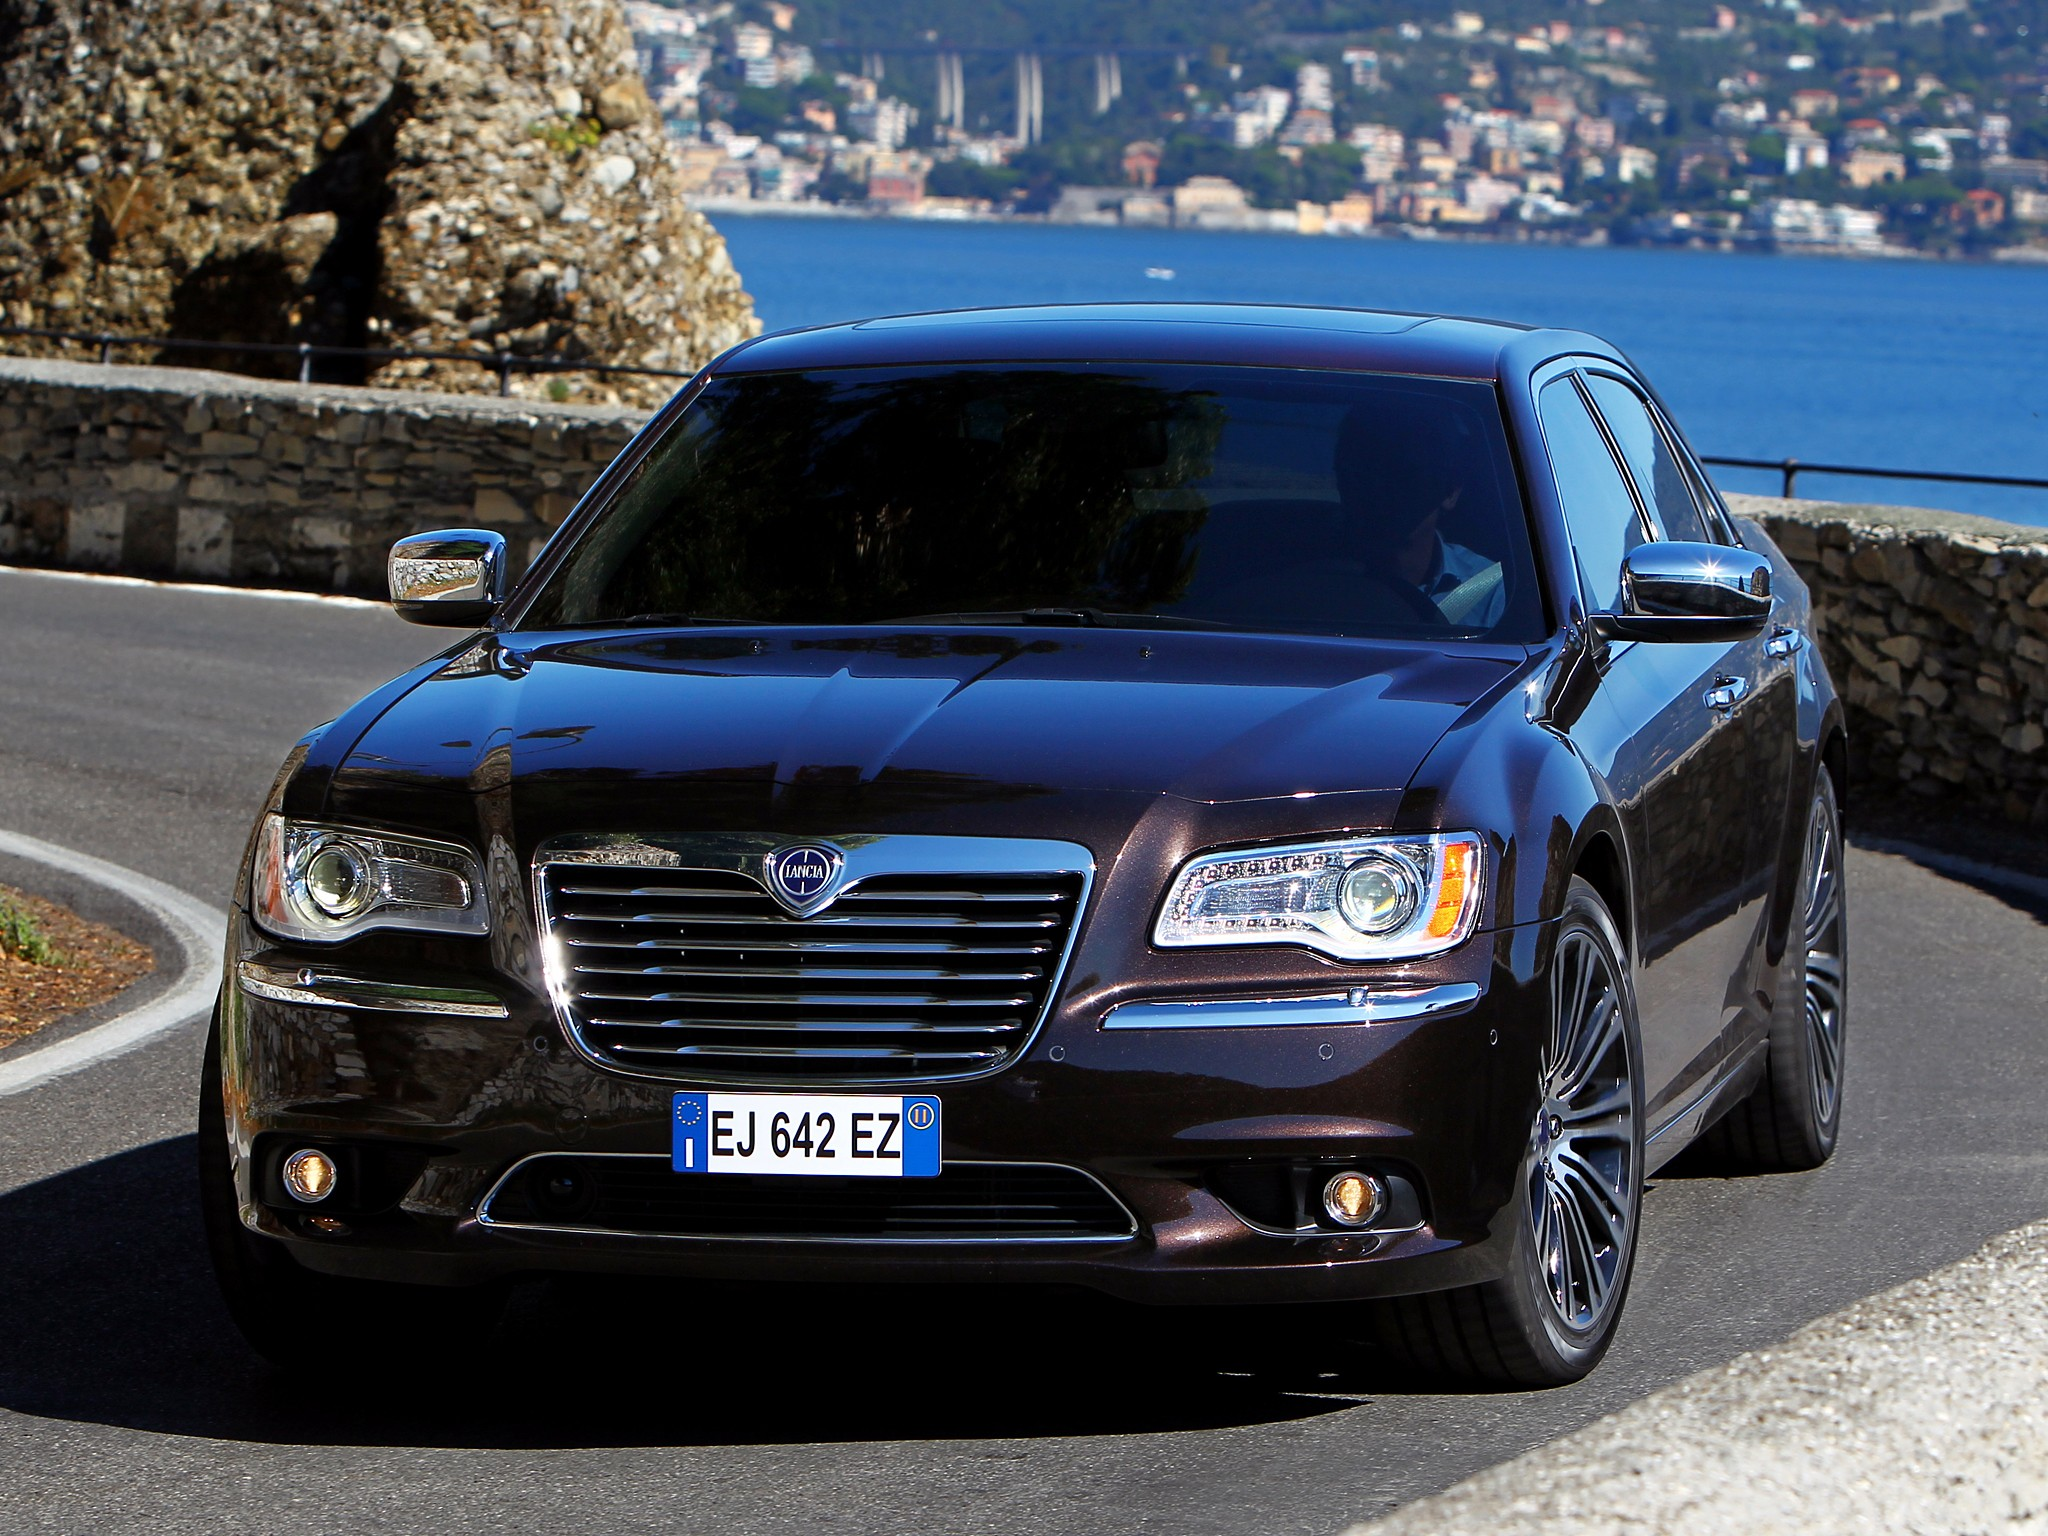 New 300 Chrysler 2016 >> LANCIA Thema - 2011, 2012, 2013, 2014, 2015, 2016, 2017 - autoevolution